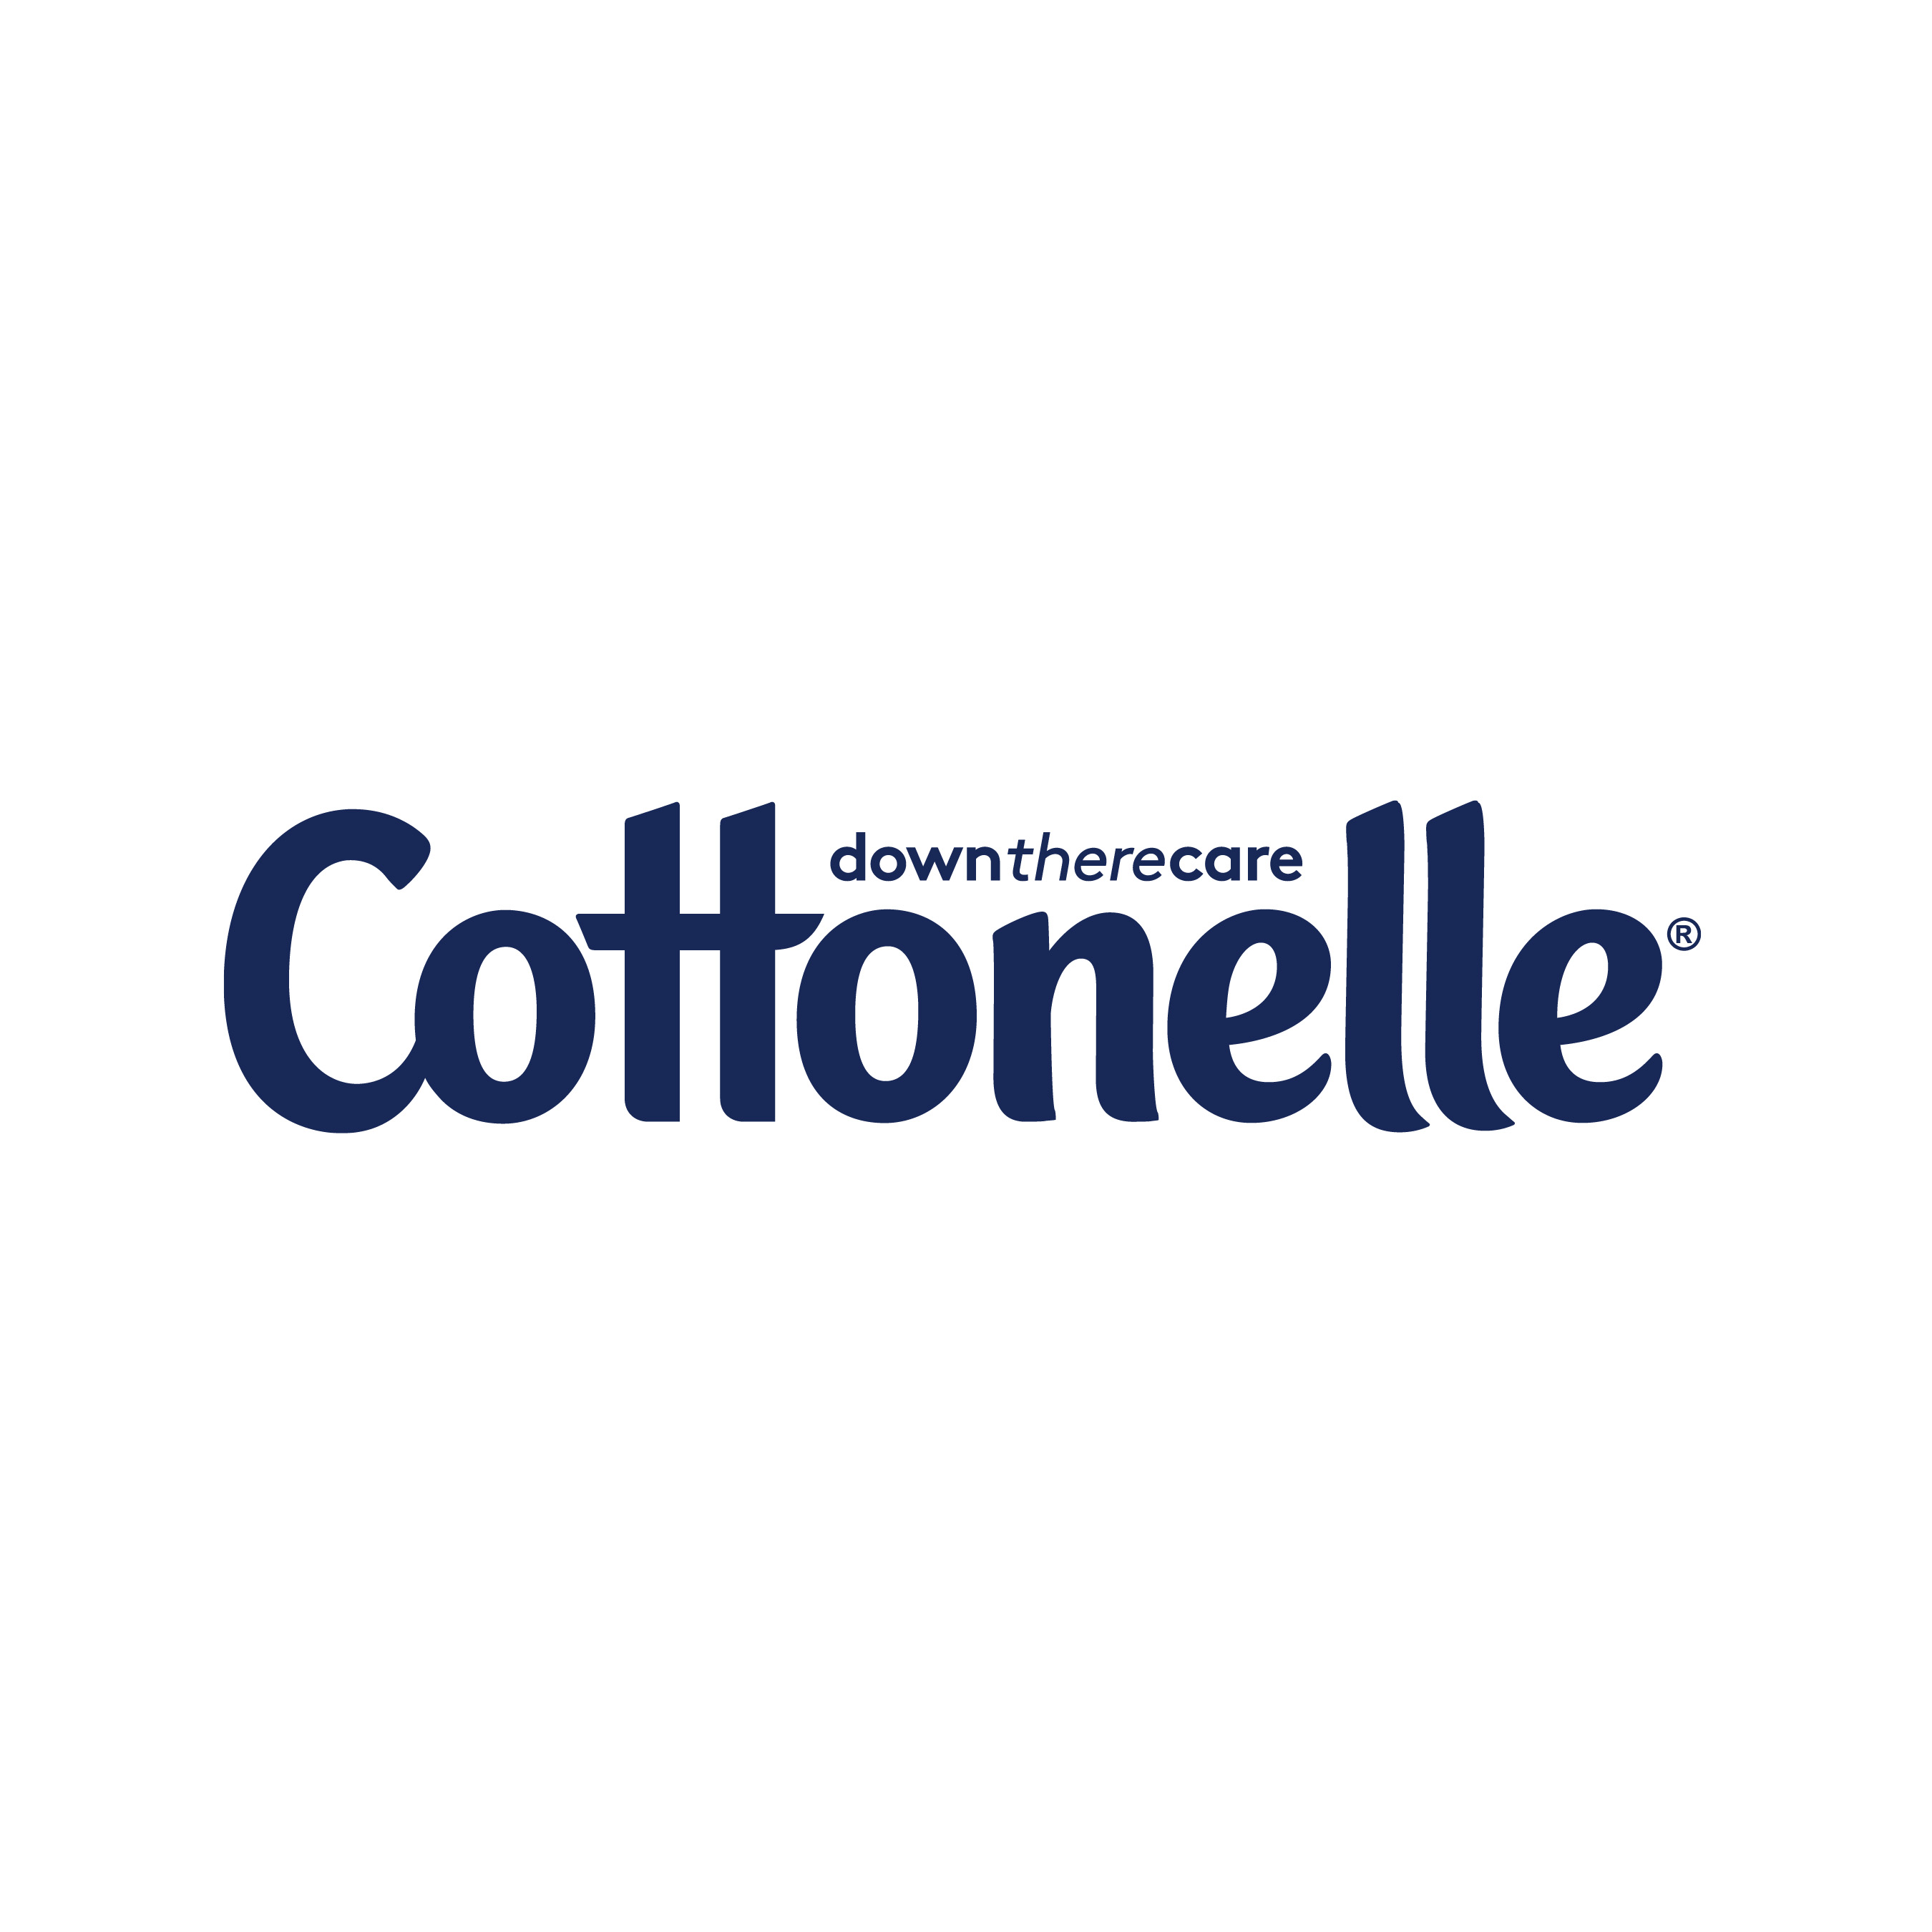 The Cottonelle® downtherecare program urges consumers to treat the skin you don't see as well as the skin you do see.